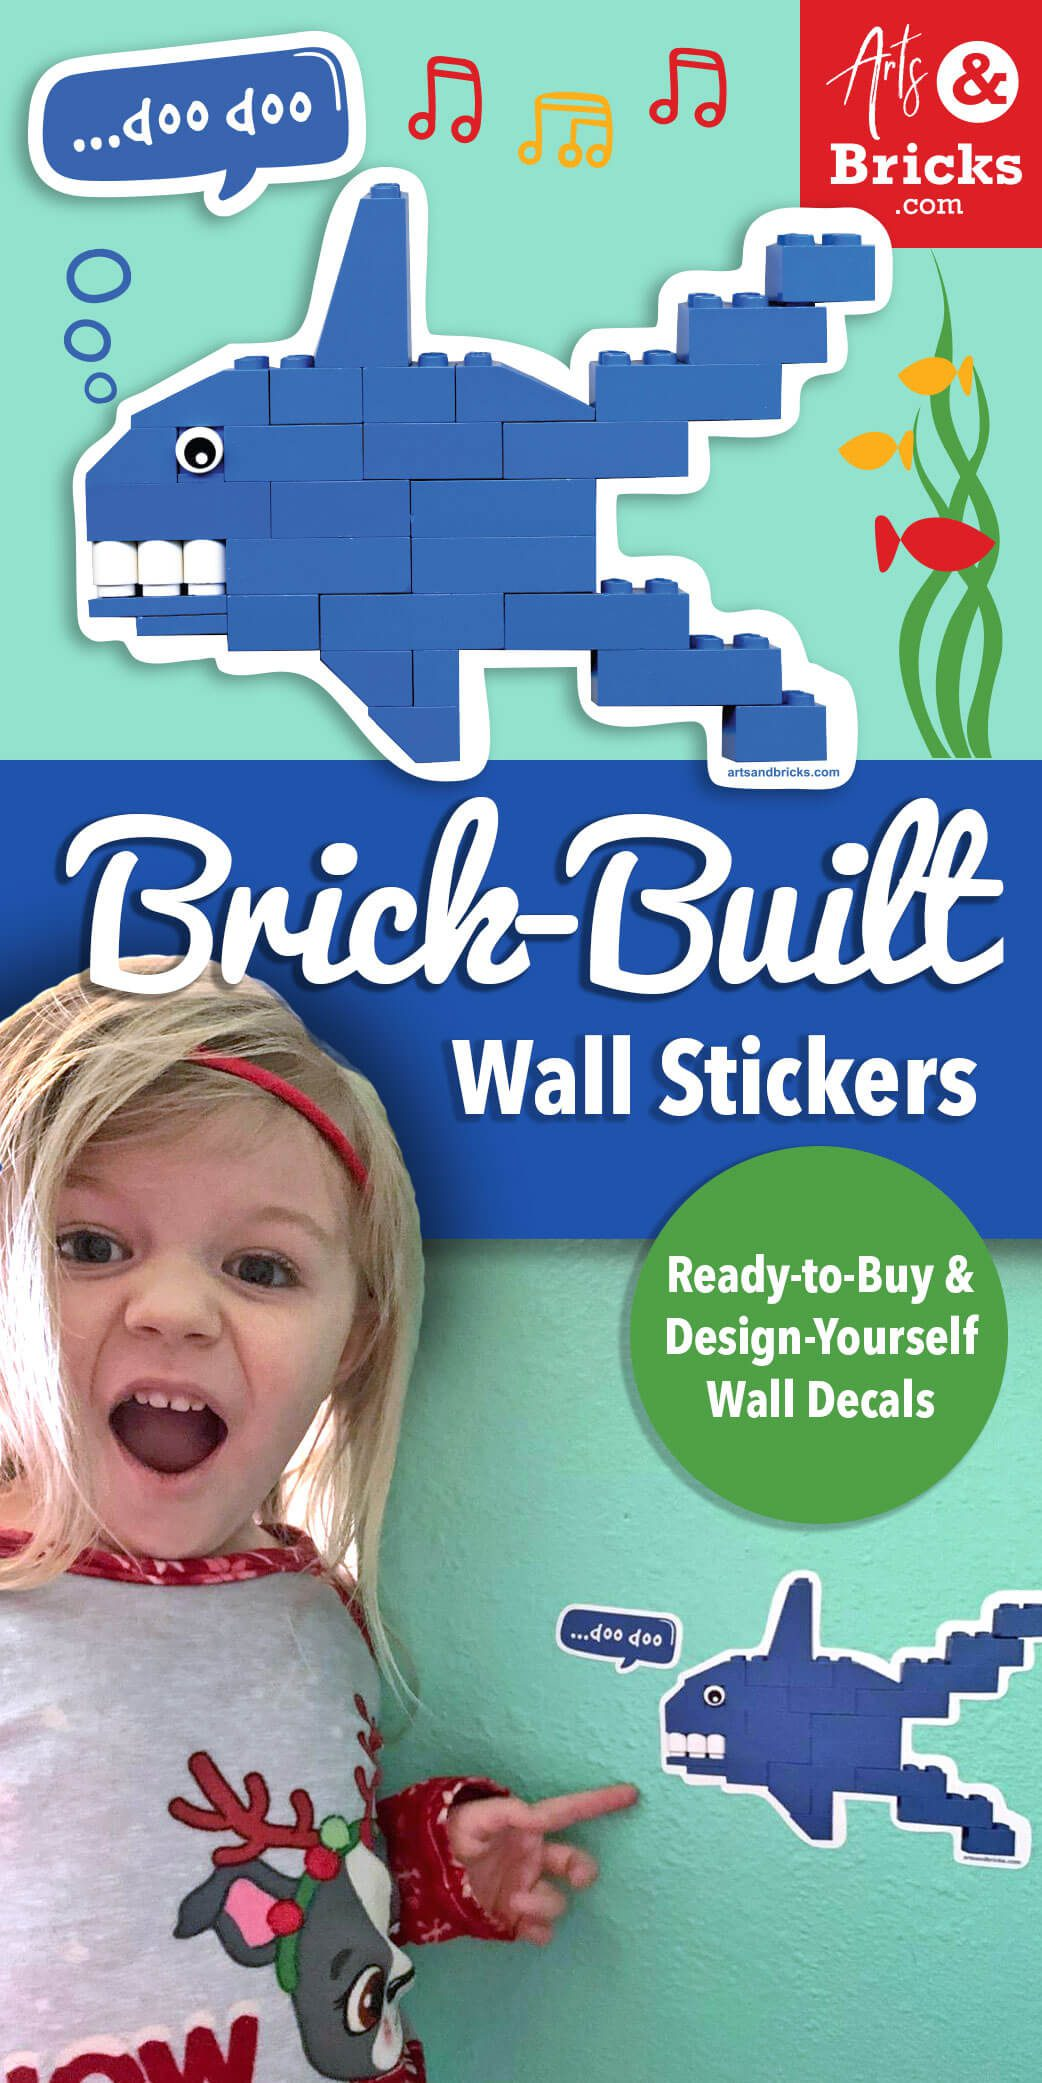 Sharks! What kid doesn't love them? But, how do you build a shark out of bricks? Here are a few inspirations and guides. Purchase Brick-built wall stickers / wall decals, even a a blue brick-built shark wall decal for kids room decor.